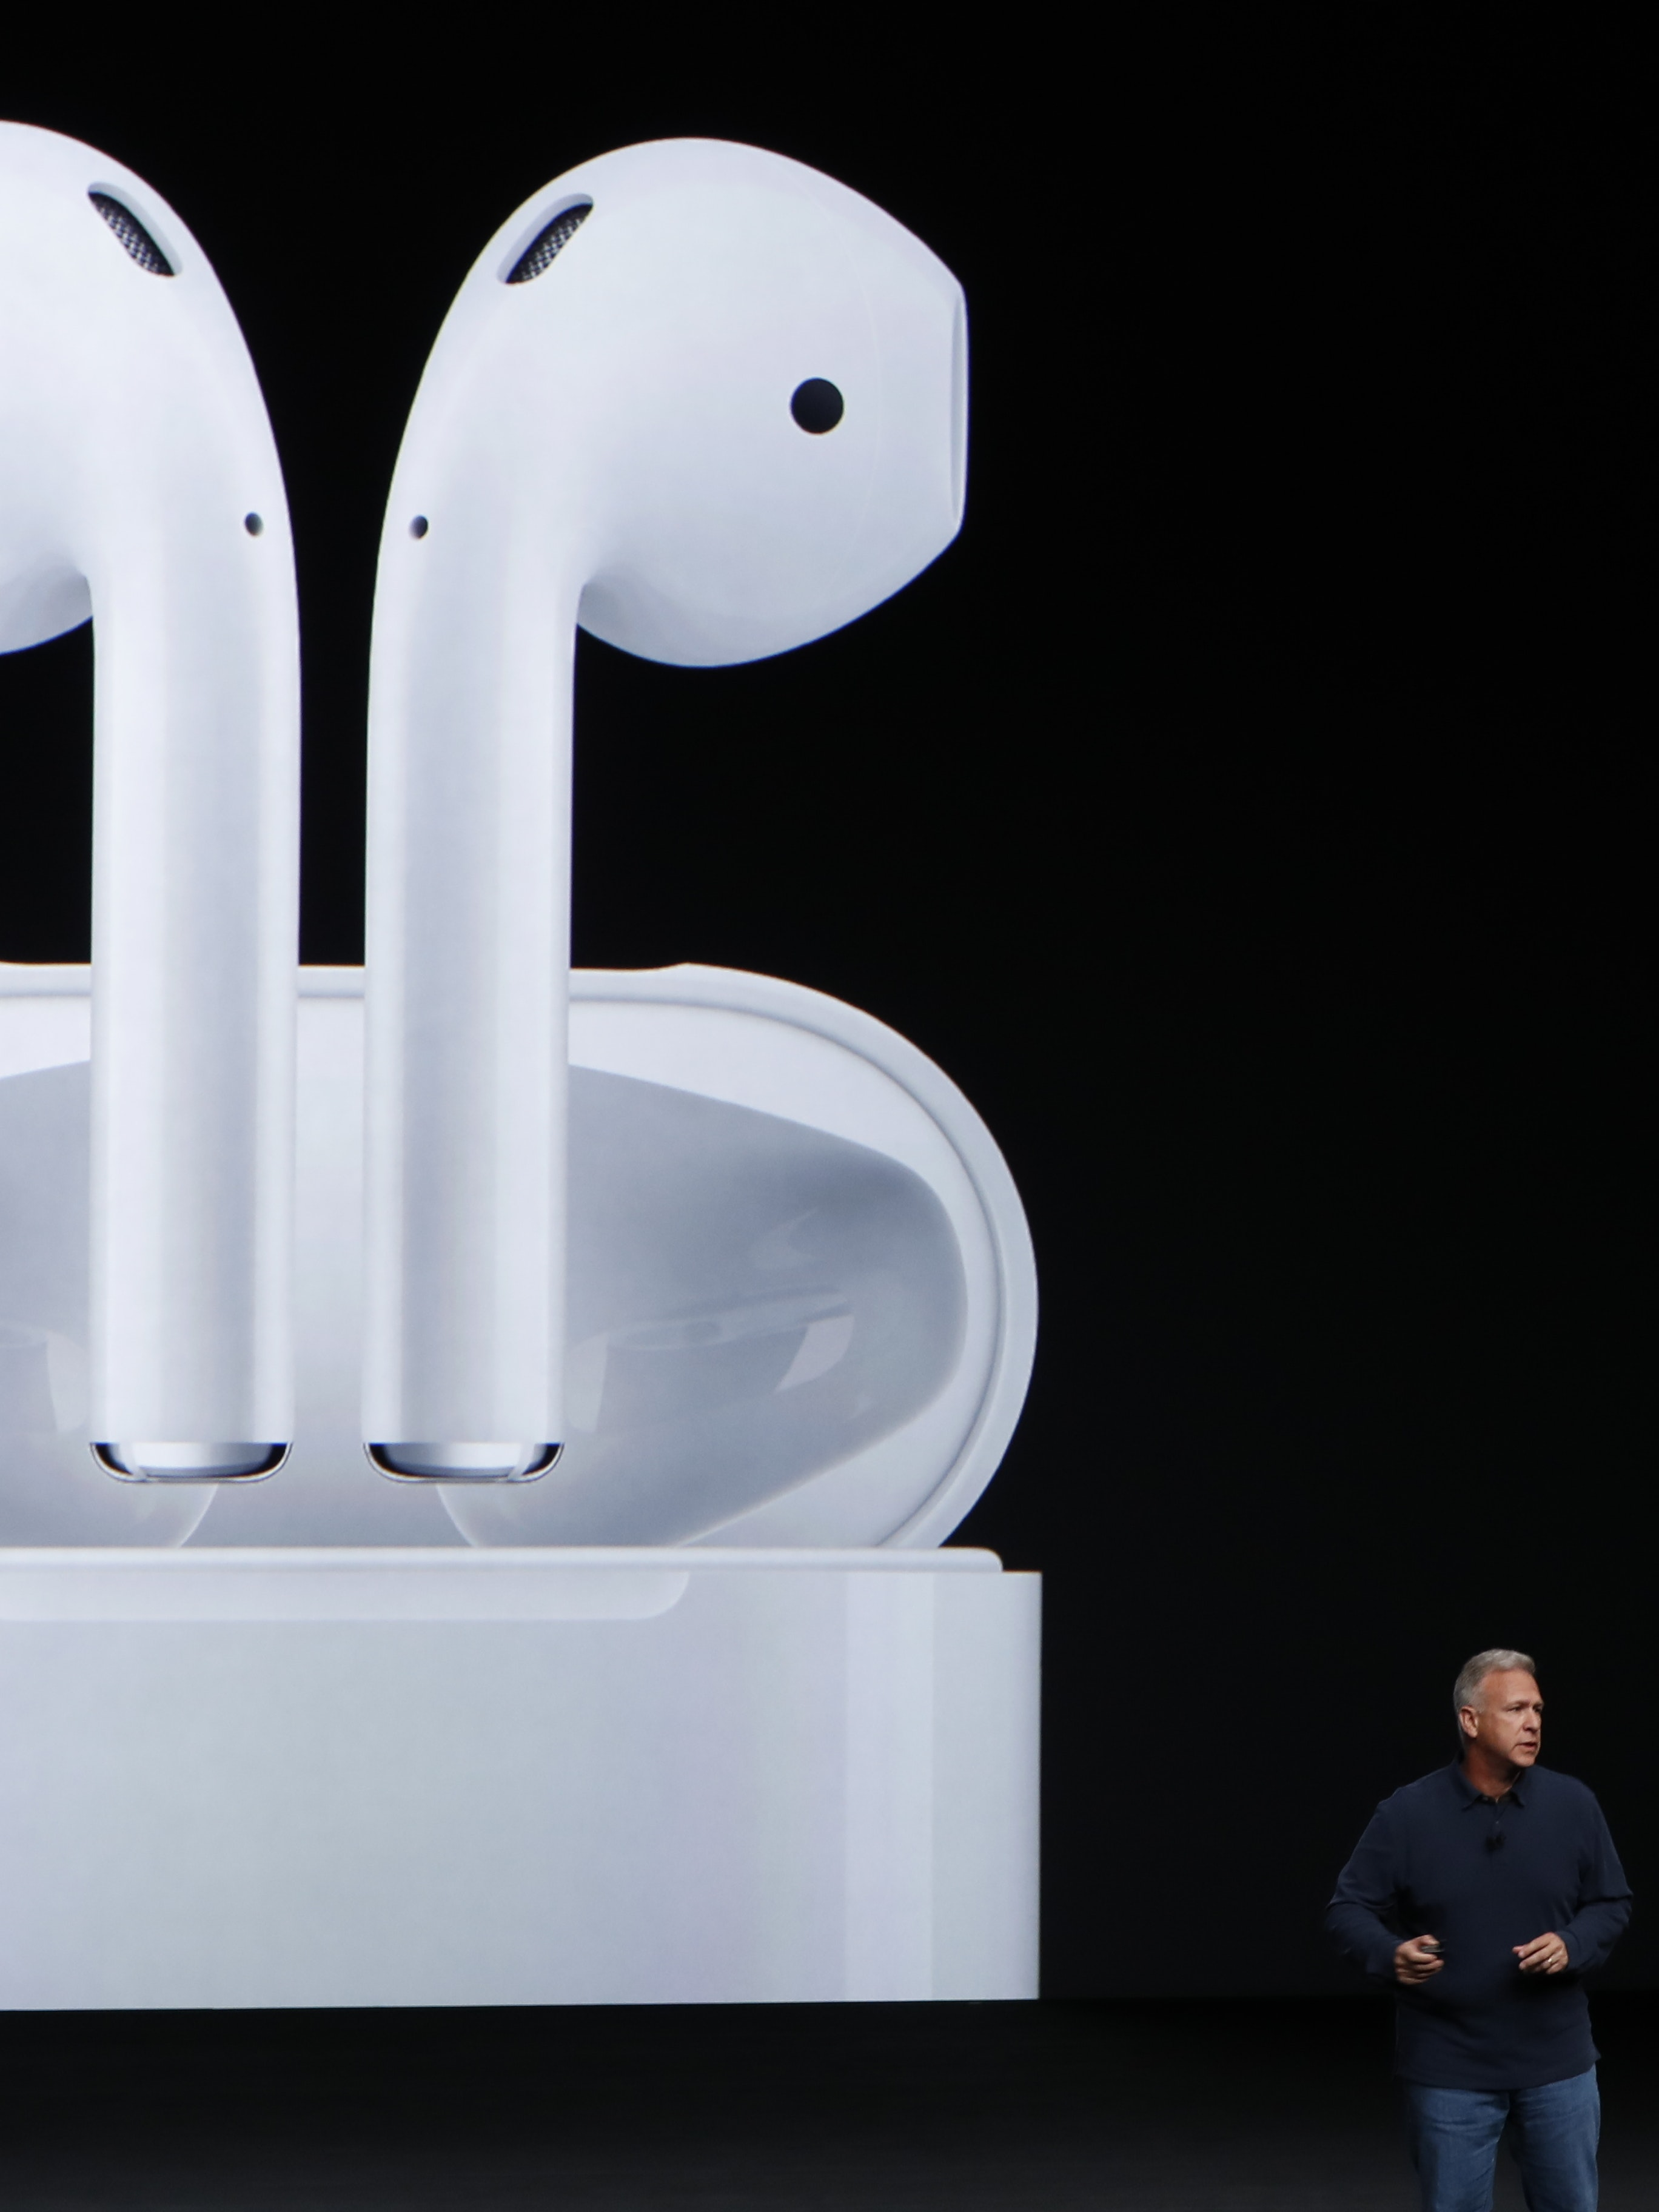 SAN FRANCISCO, CA - SEPTEMBER 07: Apple Senior Vice President of Worldwide Marketing Phil Schiller announces AirPods during a launch event on September 7, 2016 in San Francisco, California. Apple Inc. is expected to unveil latest iterations of its smart phone, forecasted to be the iPhone 7. The tech giant is also rumored to be planning to announce an update to its Apple Watch wearable device. (Photo by Stephen Lam/Getty Images)